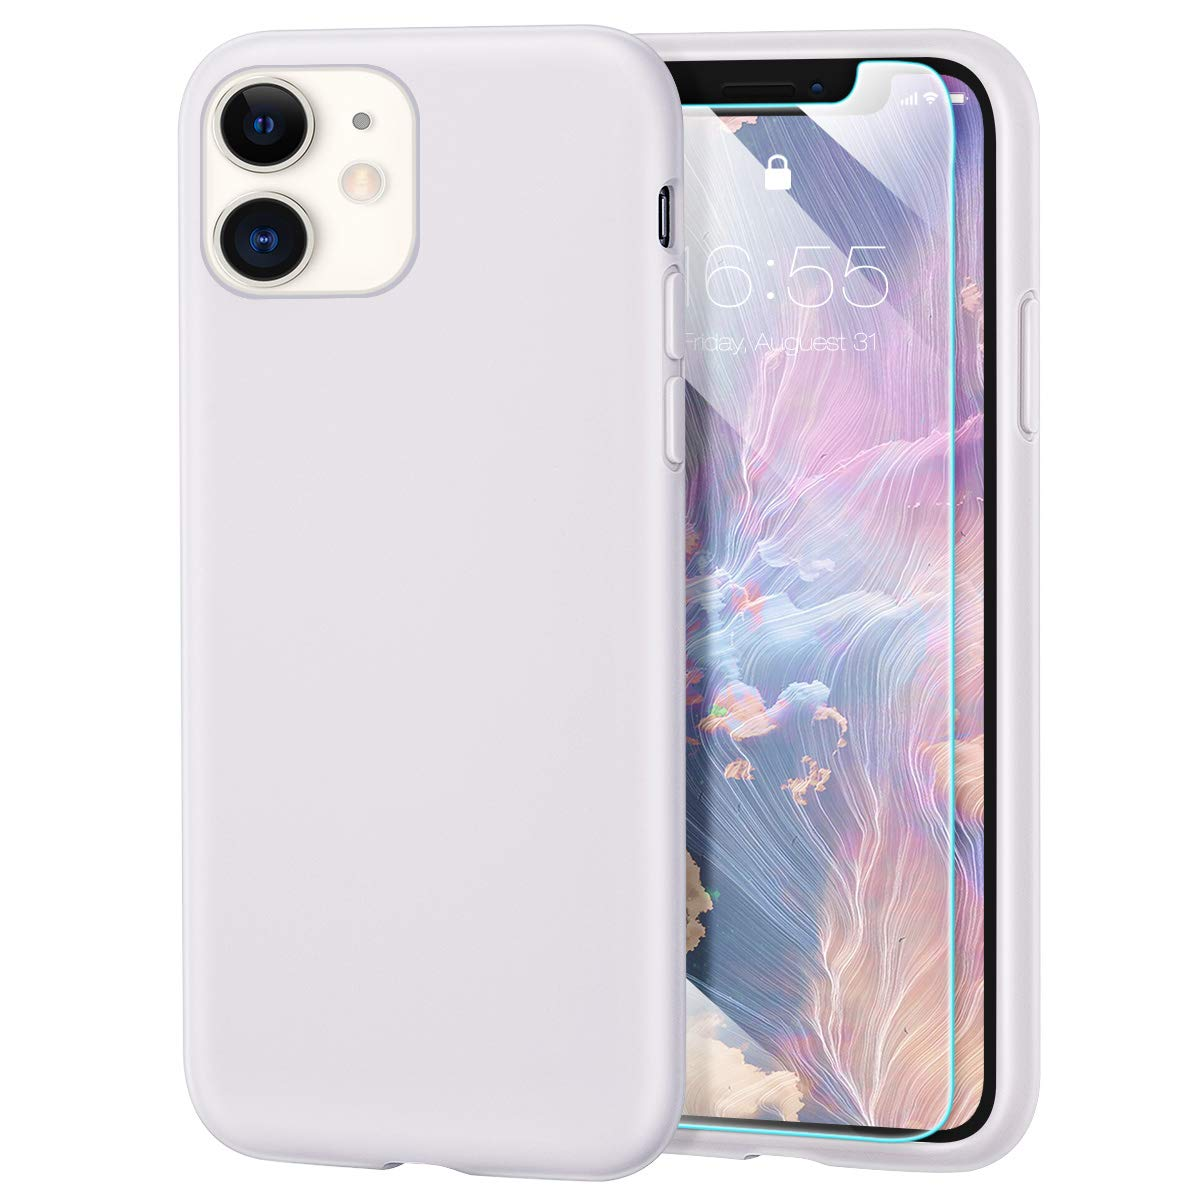 MILPROX iPhone 11 Case with Screen Protector, Liquid Silicone Gel Rubber Shockproof Slim Shell with Soft Microfiber Cloth Lining Cushion Cover for iPhone 11 6.1 inch (2019)-White